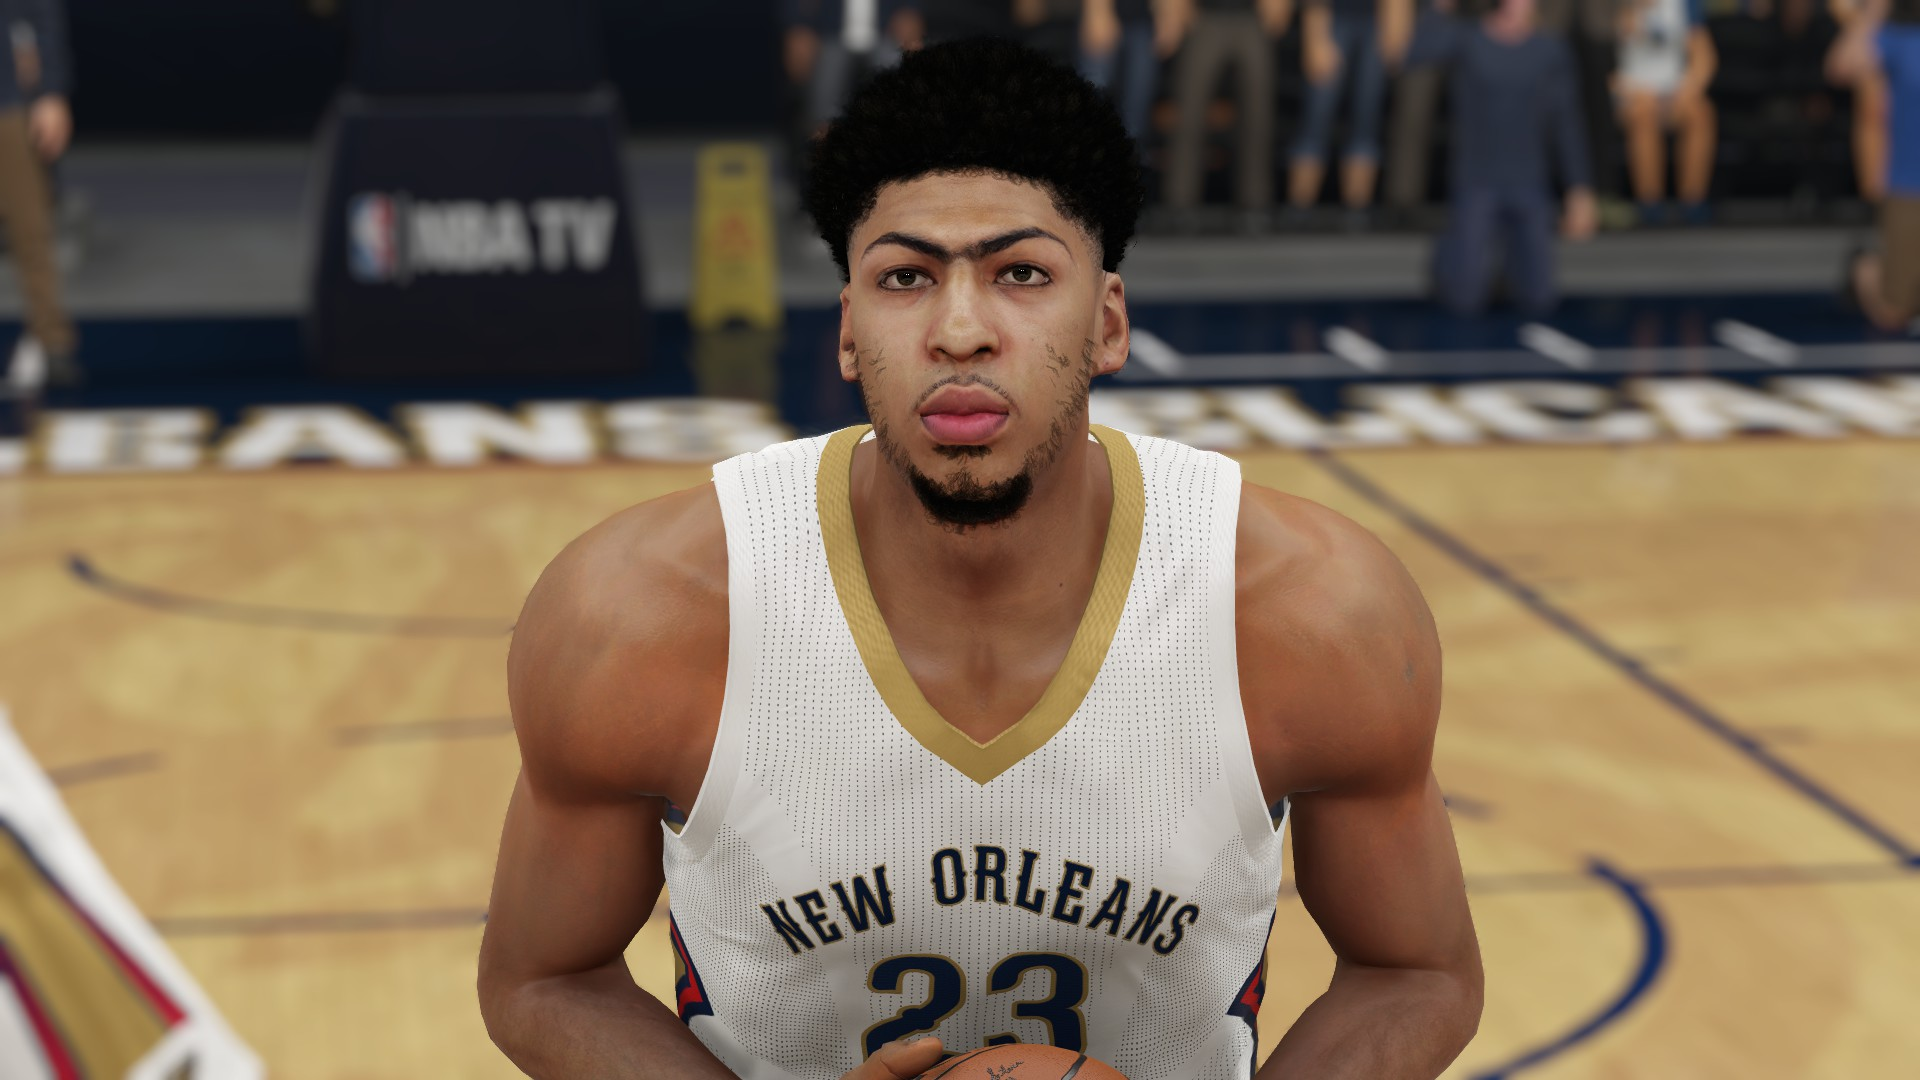 Nba 2k20 Cover Star And Release Date Officially Announced